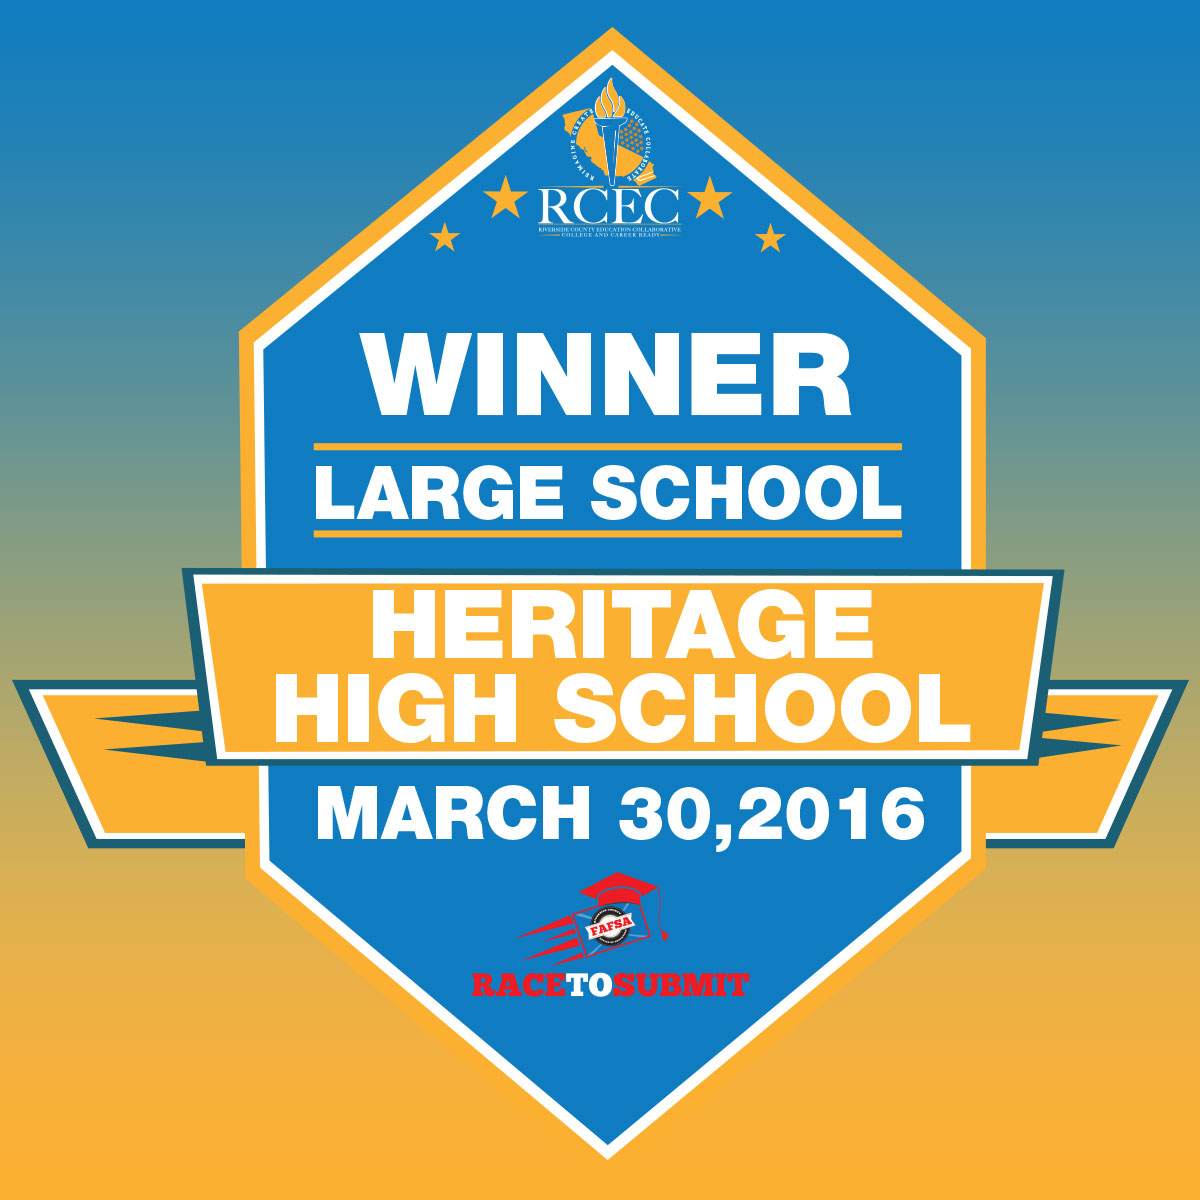 Large School Winner